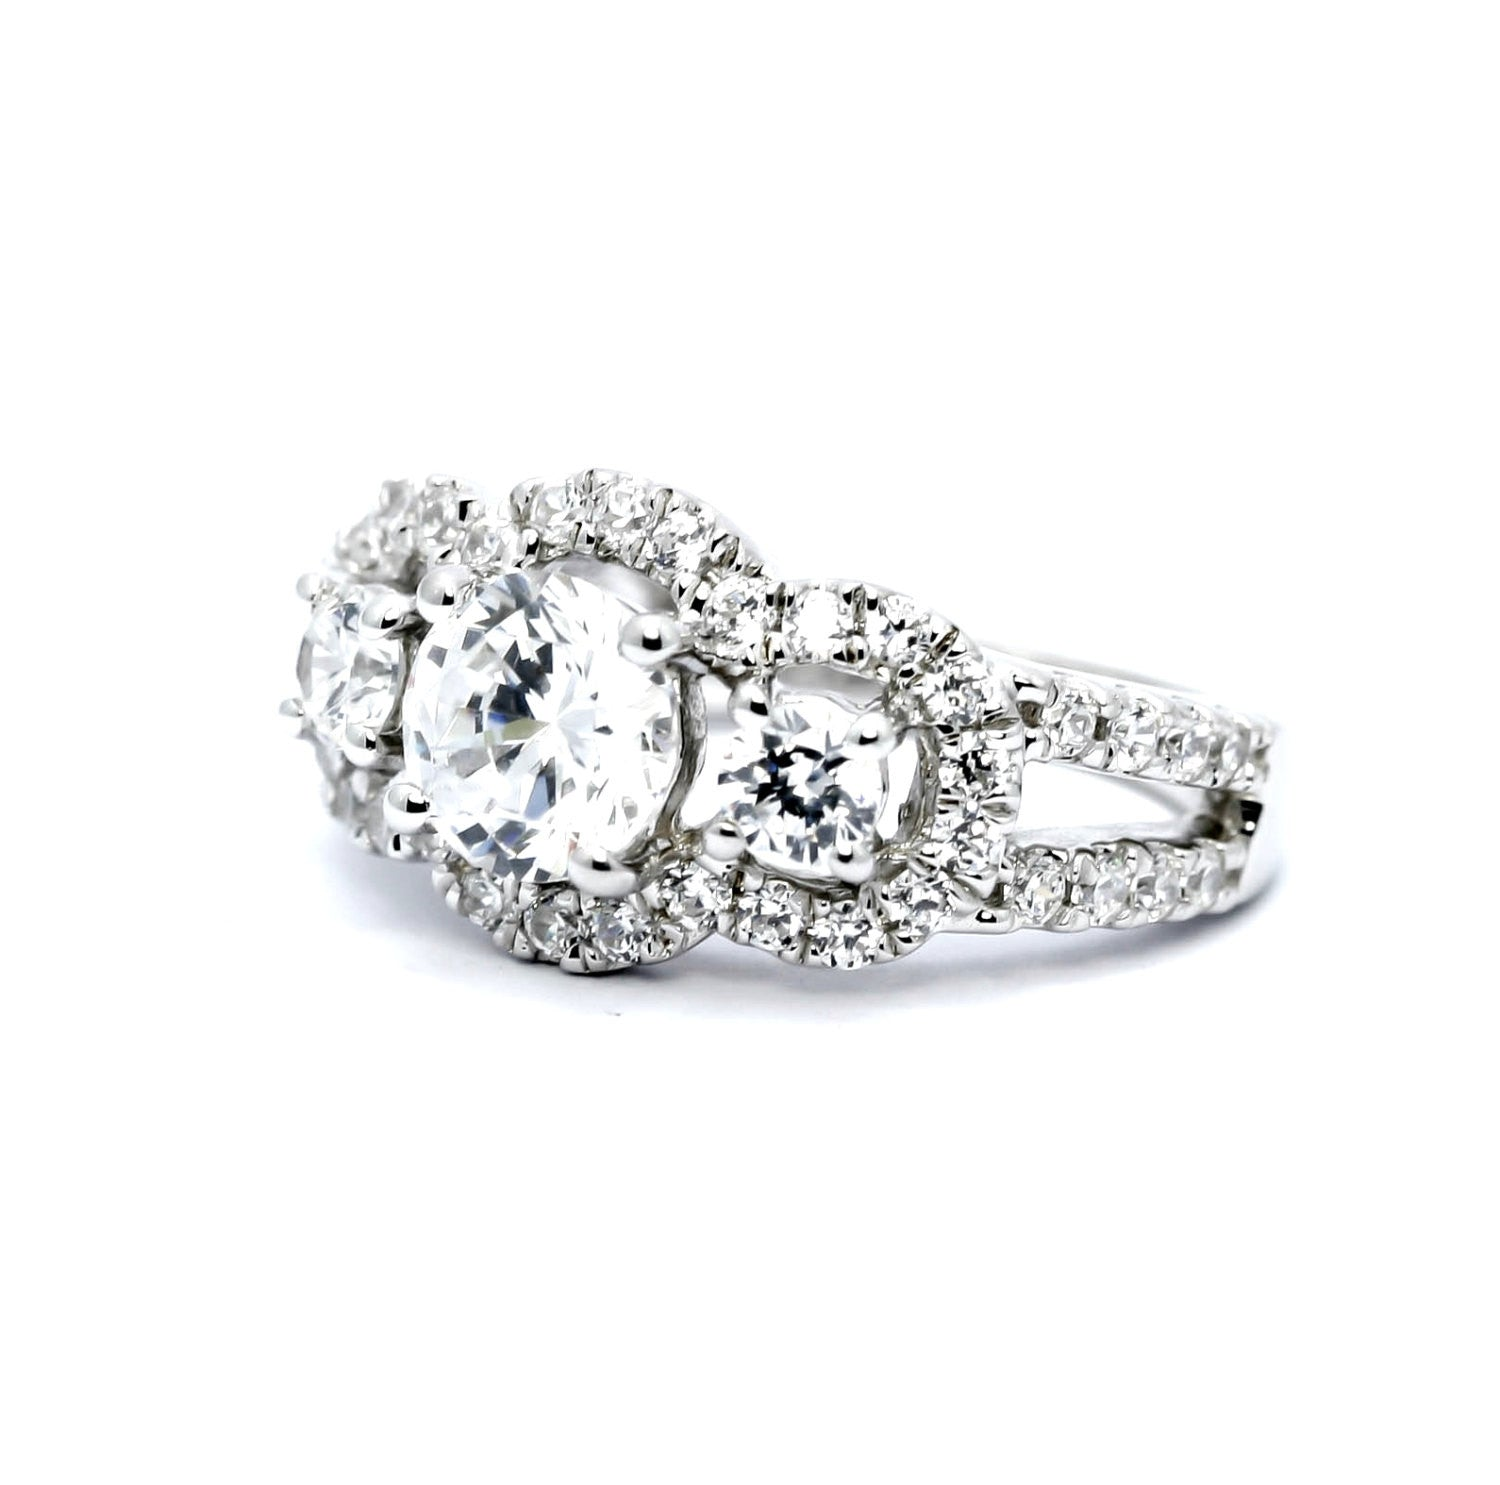 3 Stone Halo Diamond Engagement Ring, Unique 1 Carat Diamond, + 1.30 Carats Of Accent Diamonds, Split Shank Anniversary Ring - WDY11610